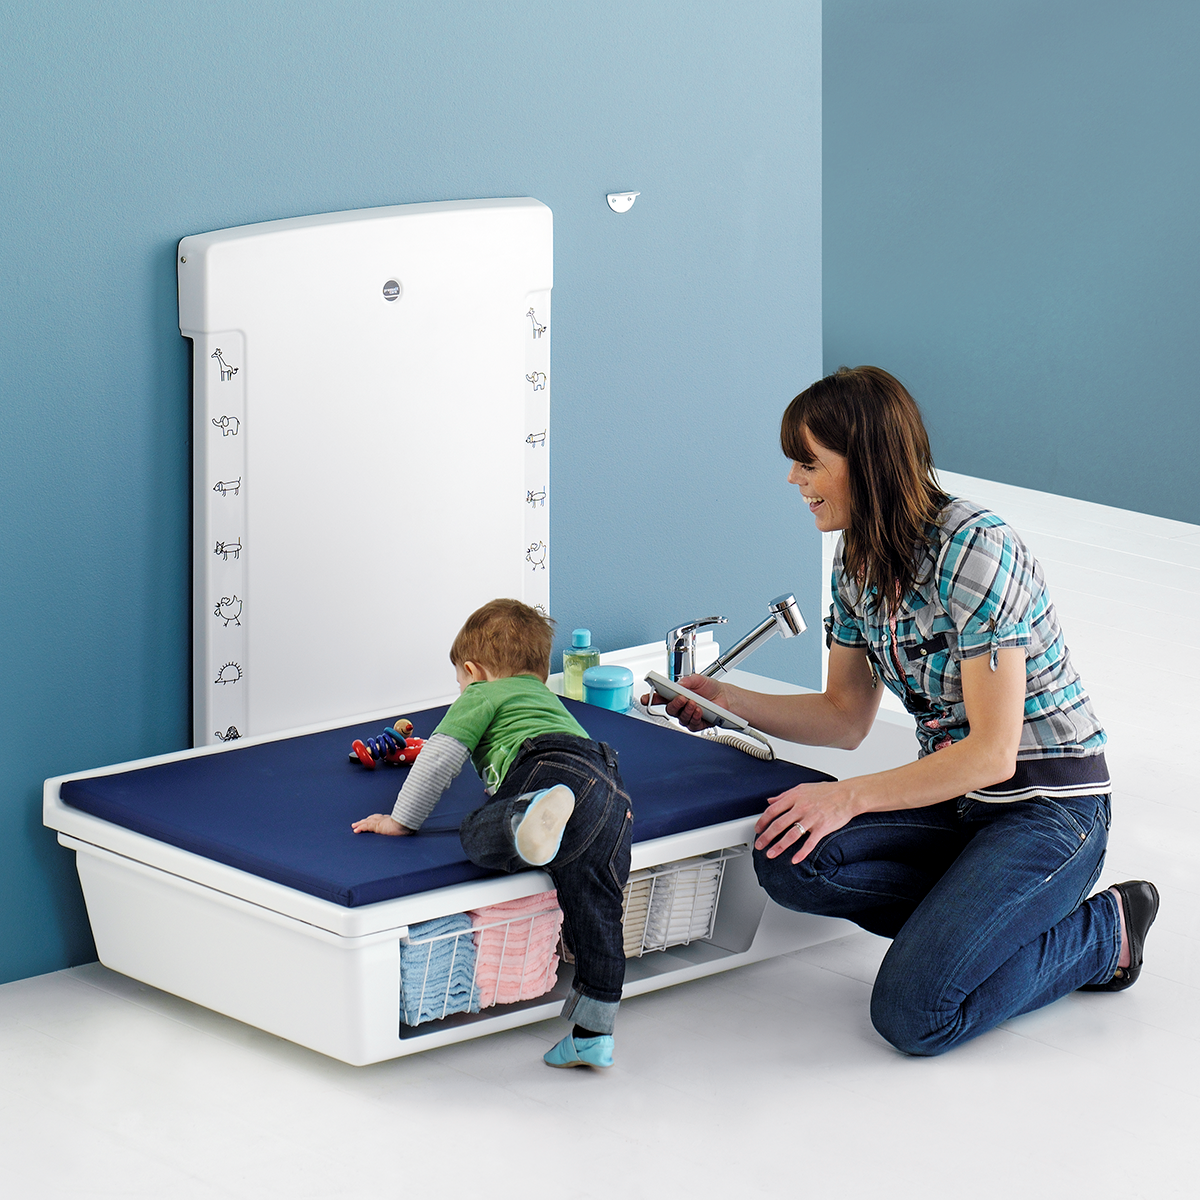 Changing table, 800 x 1400 mm, electrically height adjustable, with sanitary appliances and mixer tap with pull-out spout